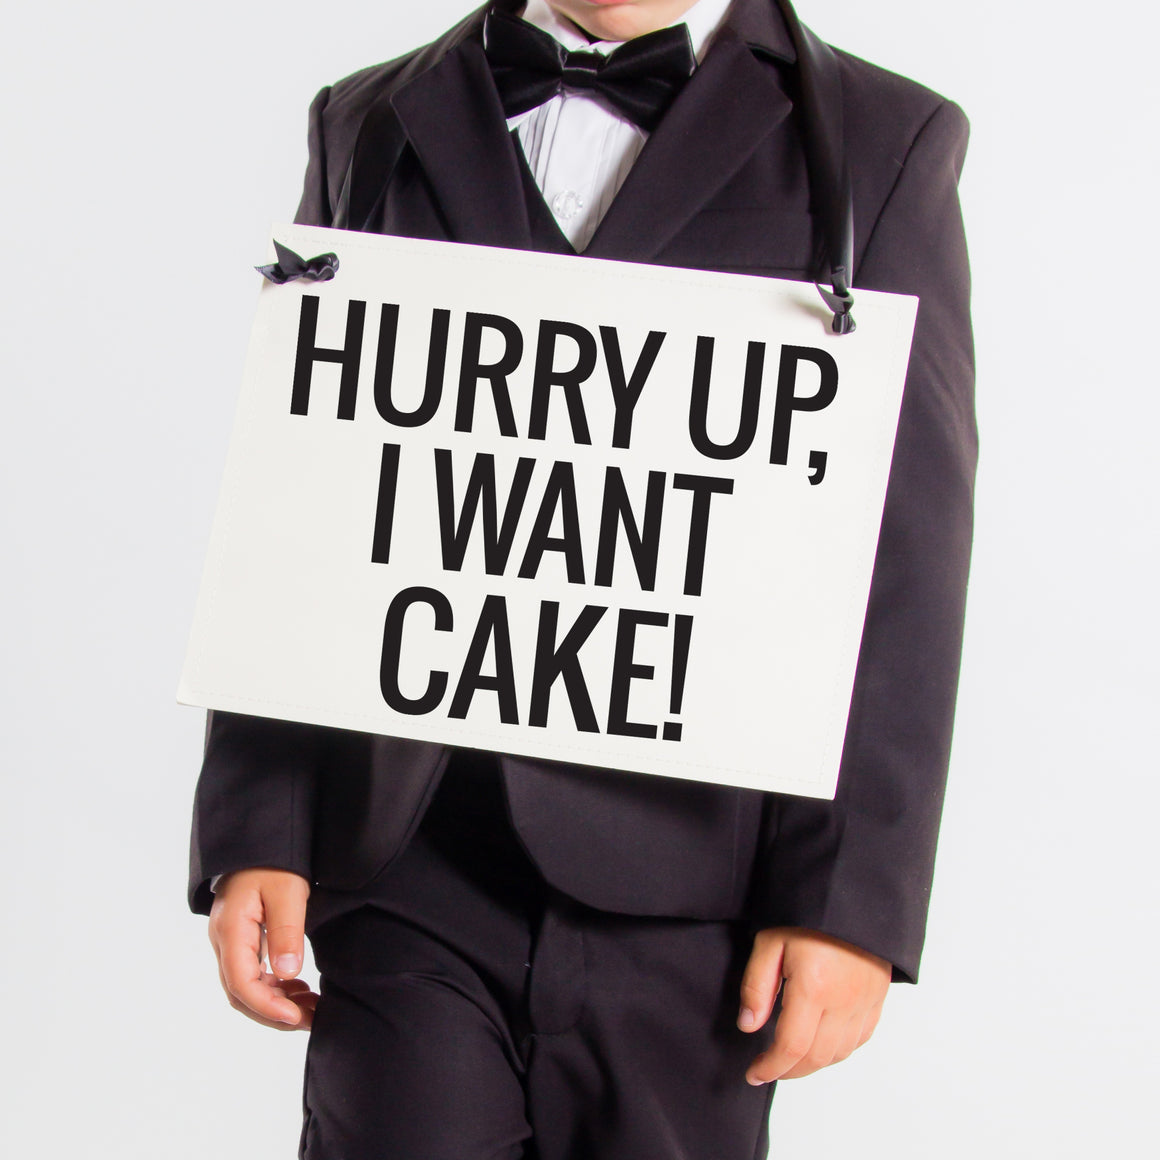 Hurry Up I Want Cake Sign